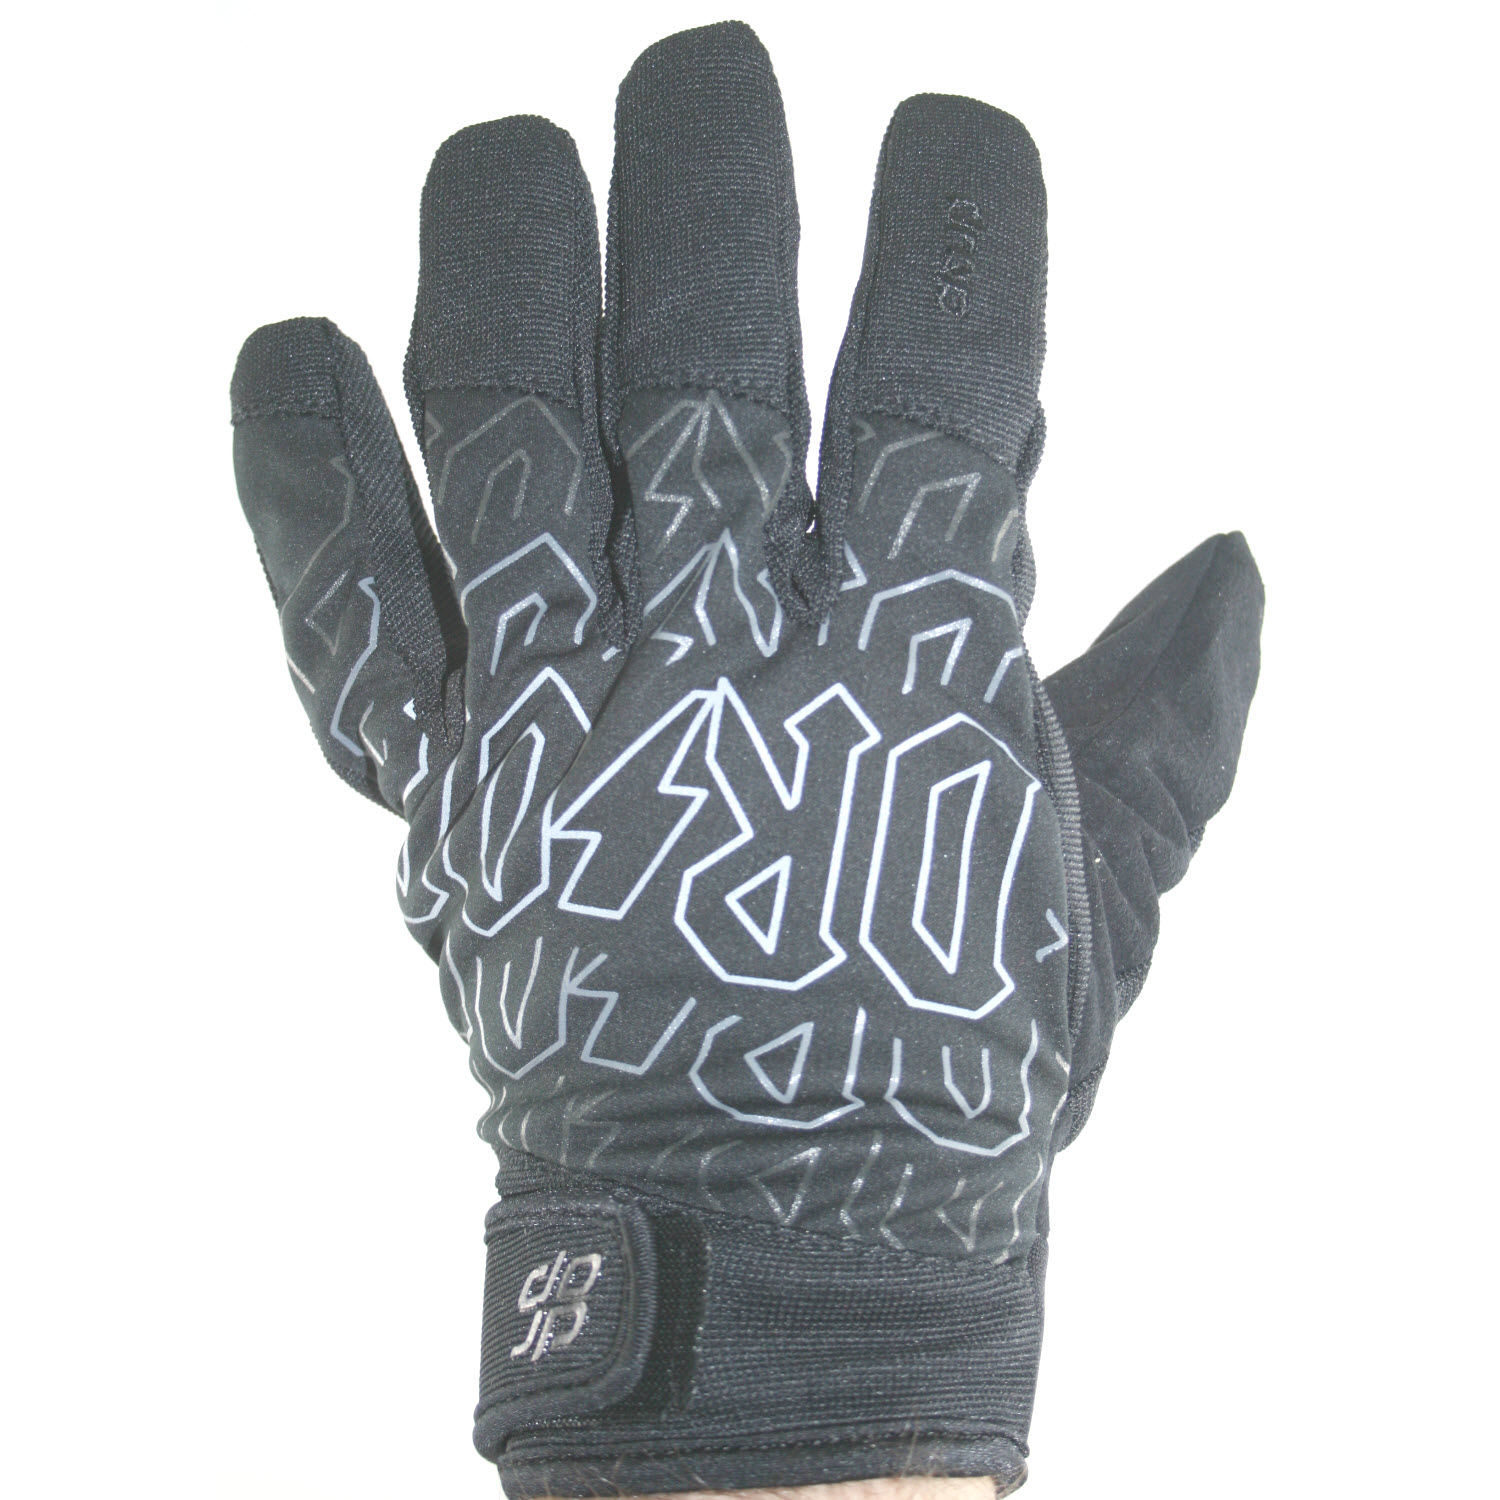 Drop 1080 Snowboard Gloves Rock On in Black